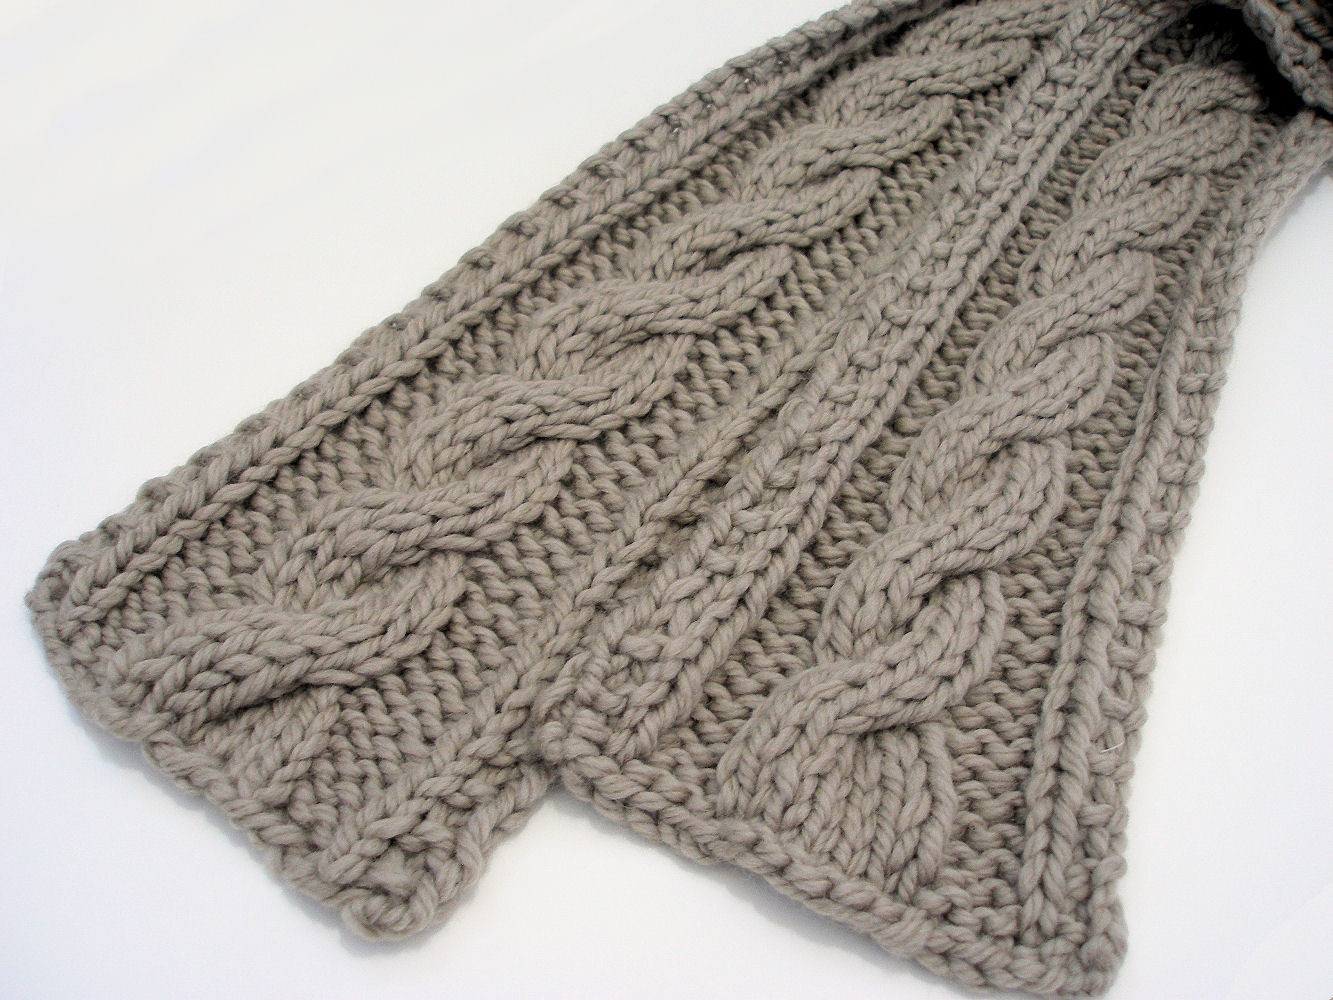 Crochet Cable Pattern Elegant Crochet Cable Stitch Scarf Pattern Crochet and Knit Of Perfect 40 Ideas Crochet Cable Pattern